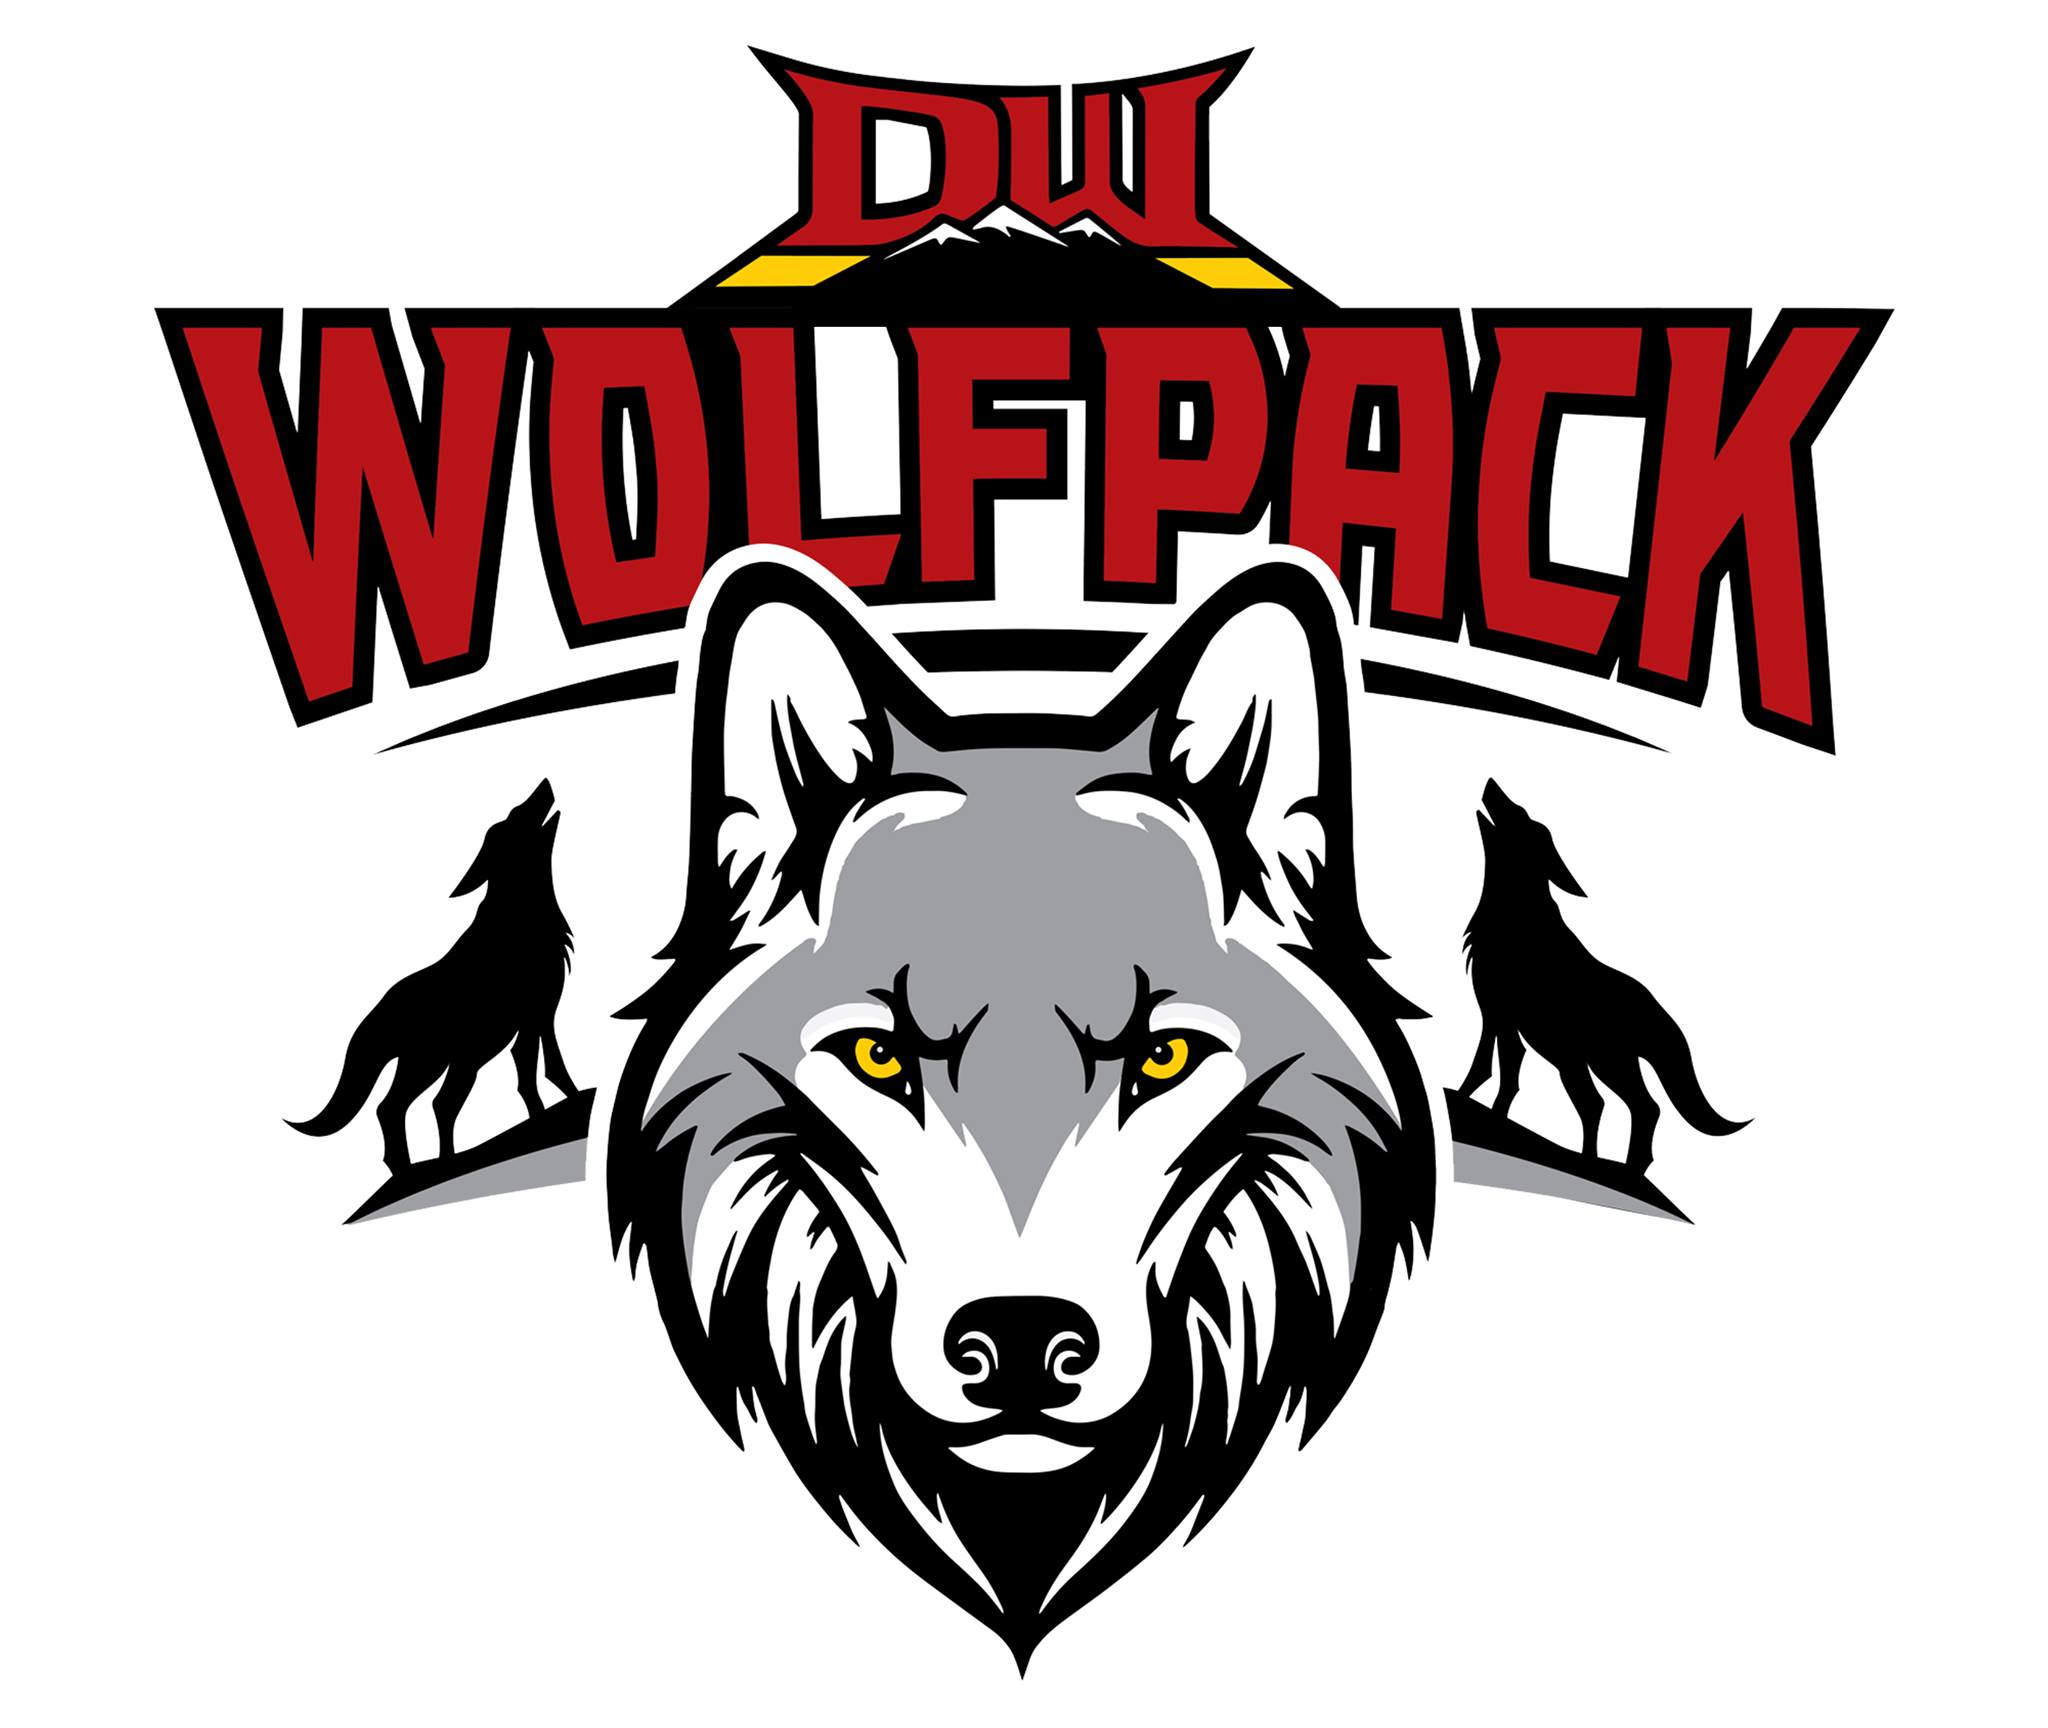 DW WOLFPACK